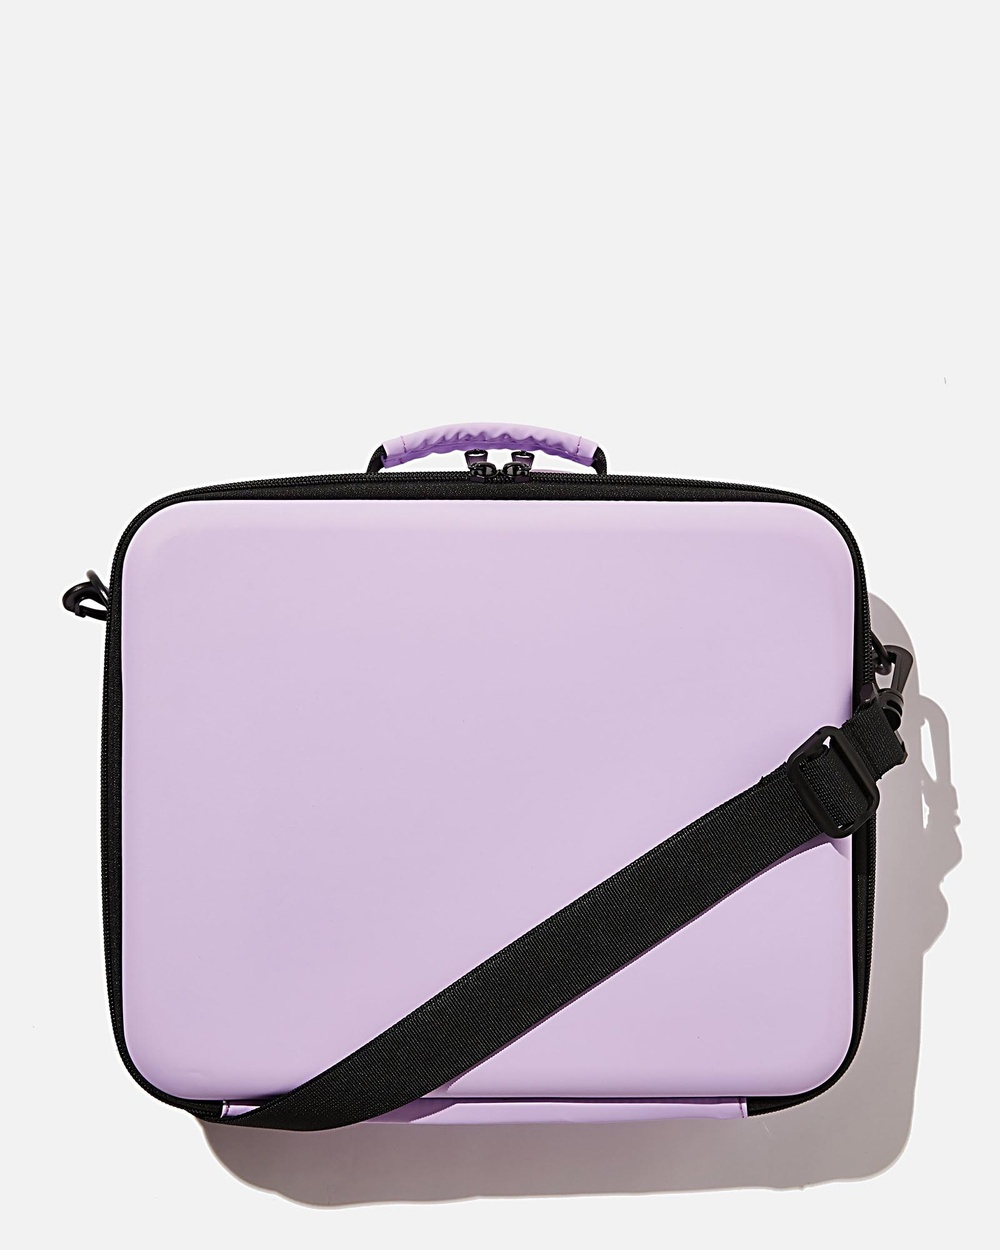 Typo Hustle Hard Case Tech Accessories Gingham Pale Lilac